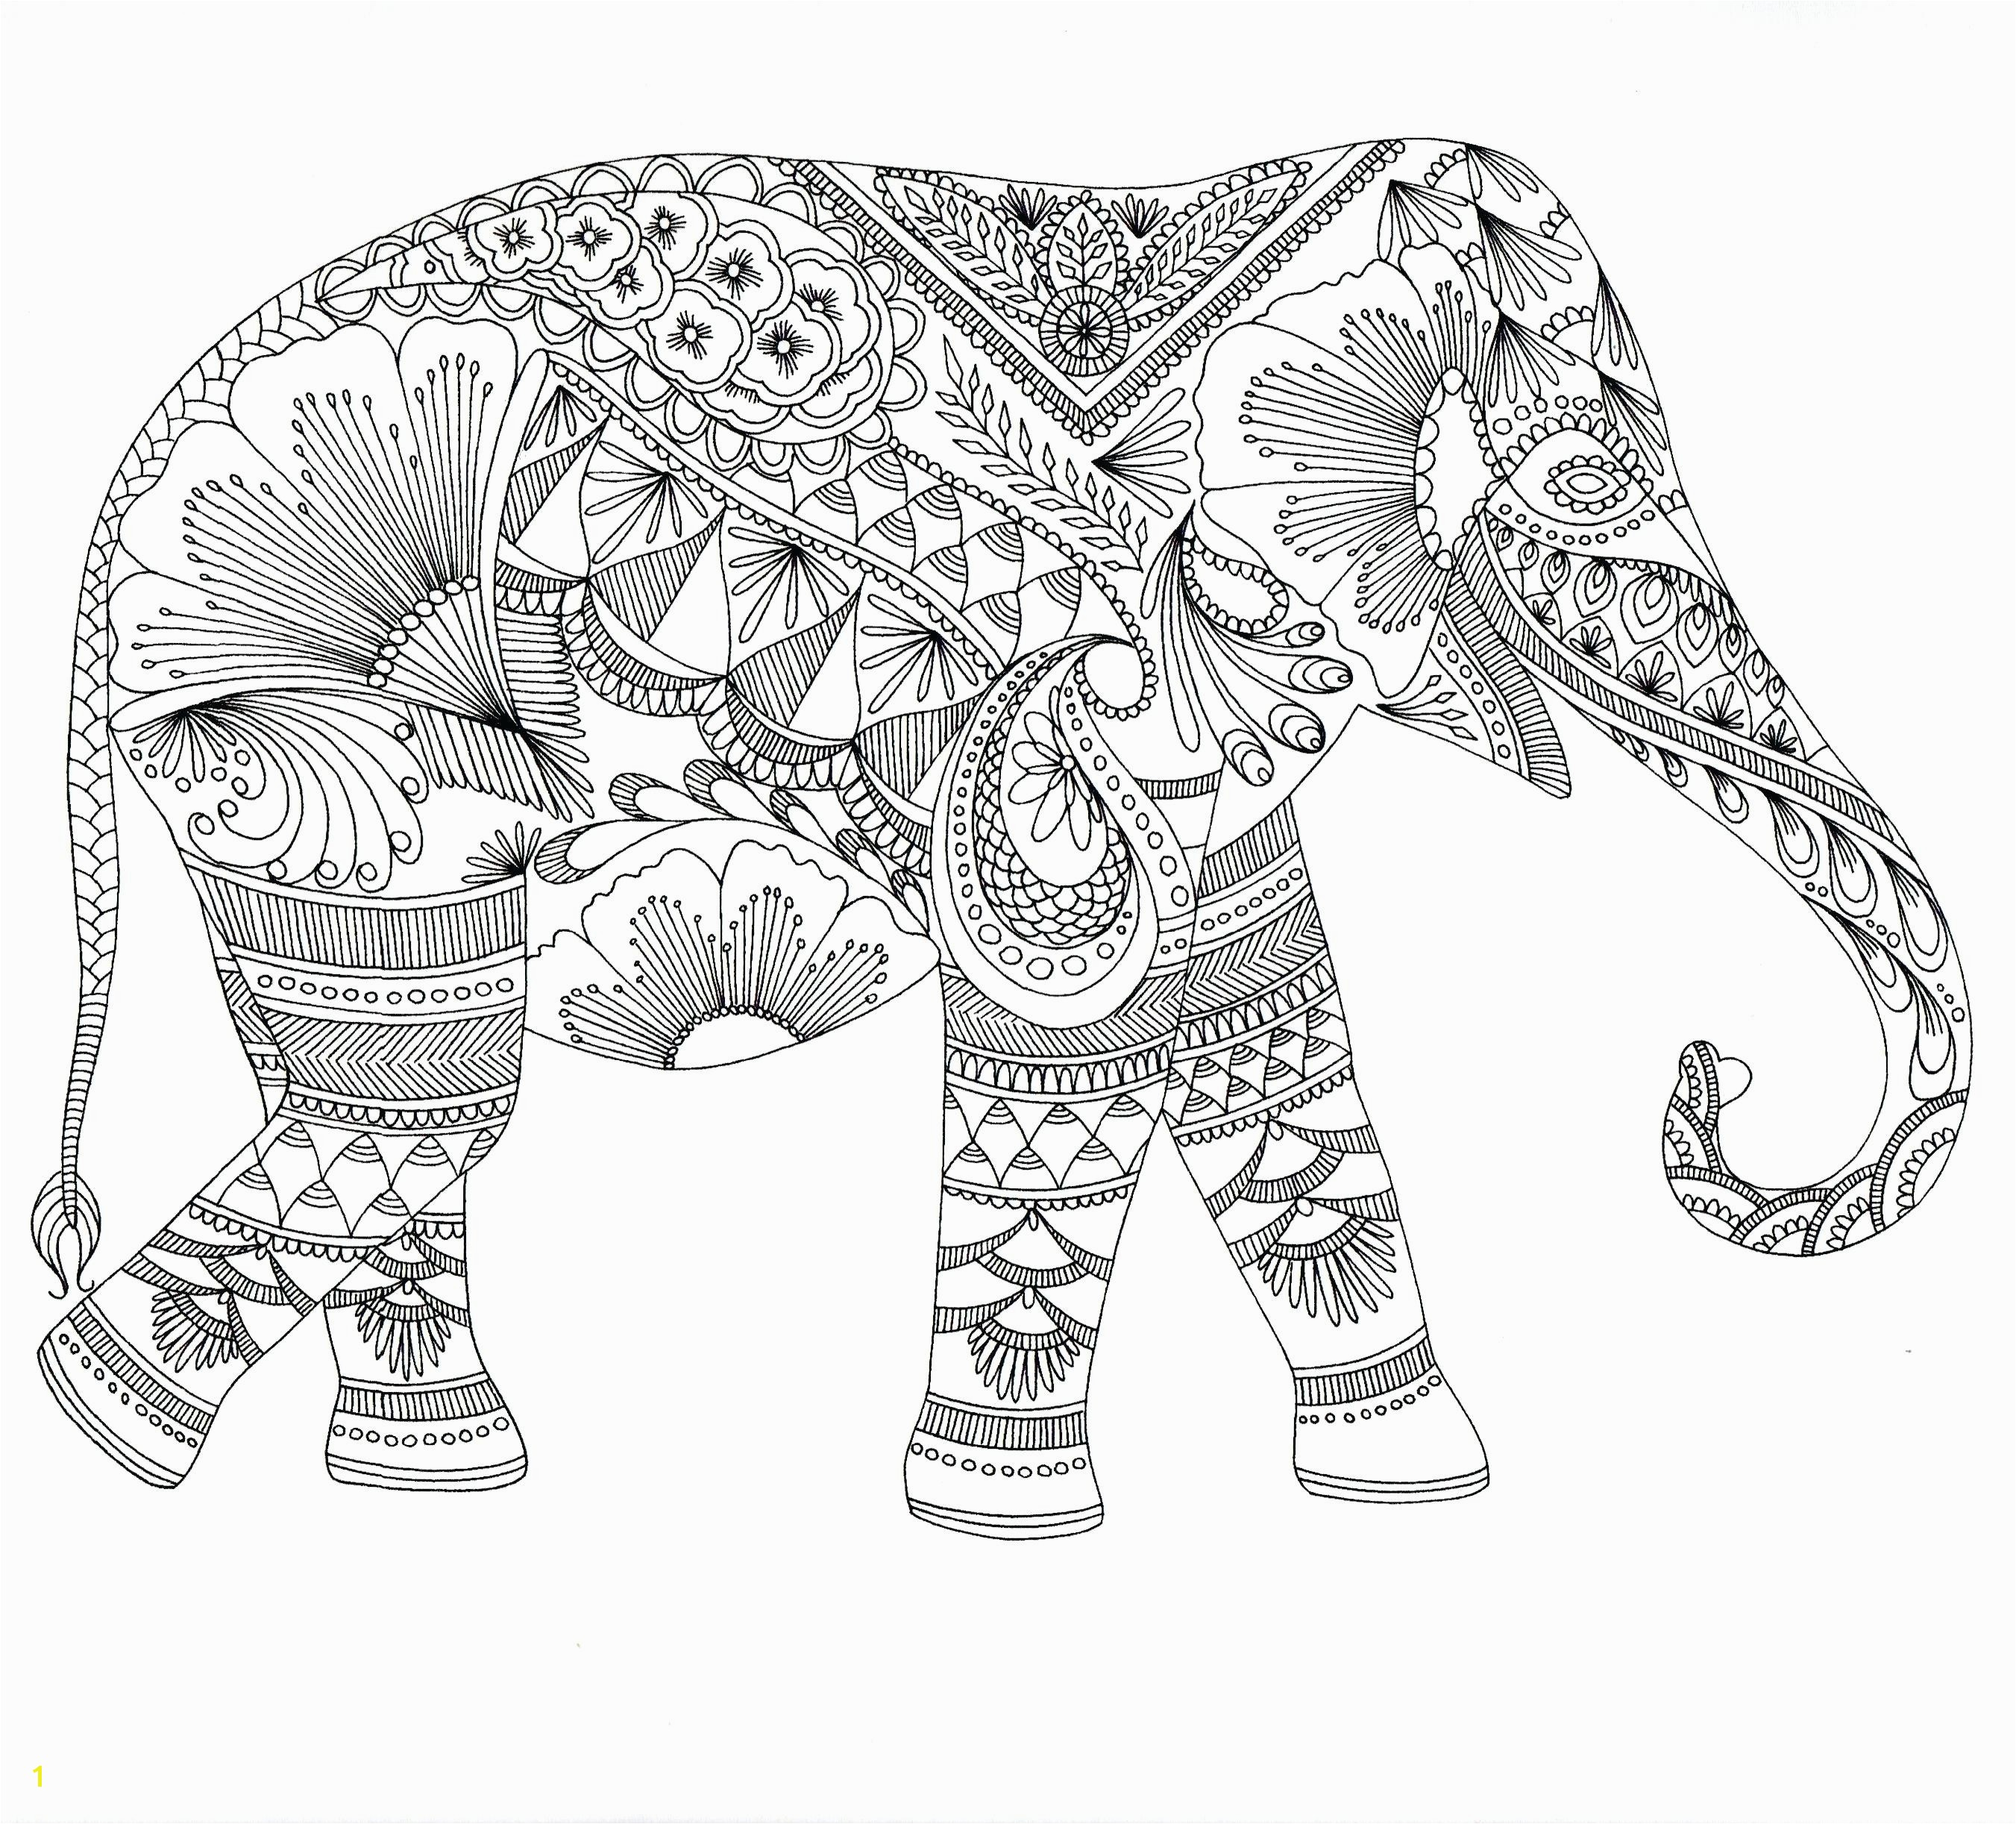 Awesome Animal Mandala Coloring Pages Collection 4 k Elephant Mandala Coloring Pages For Beginners